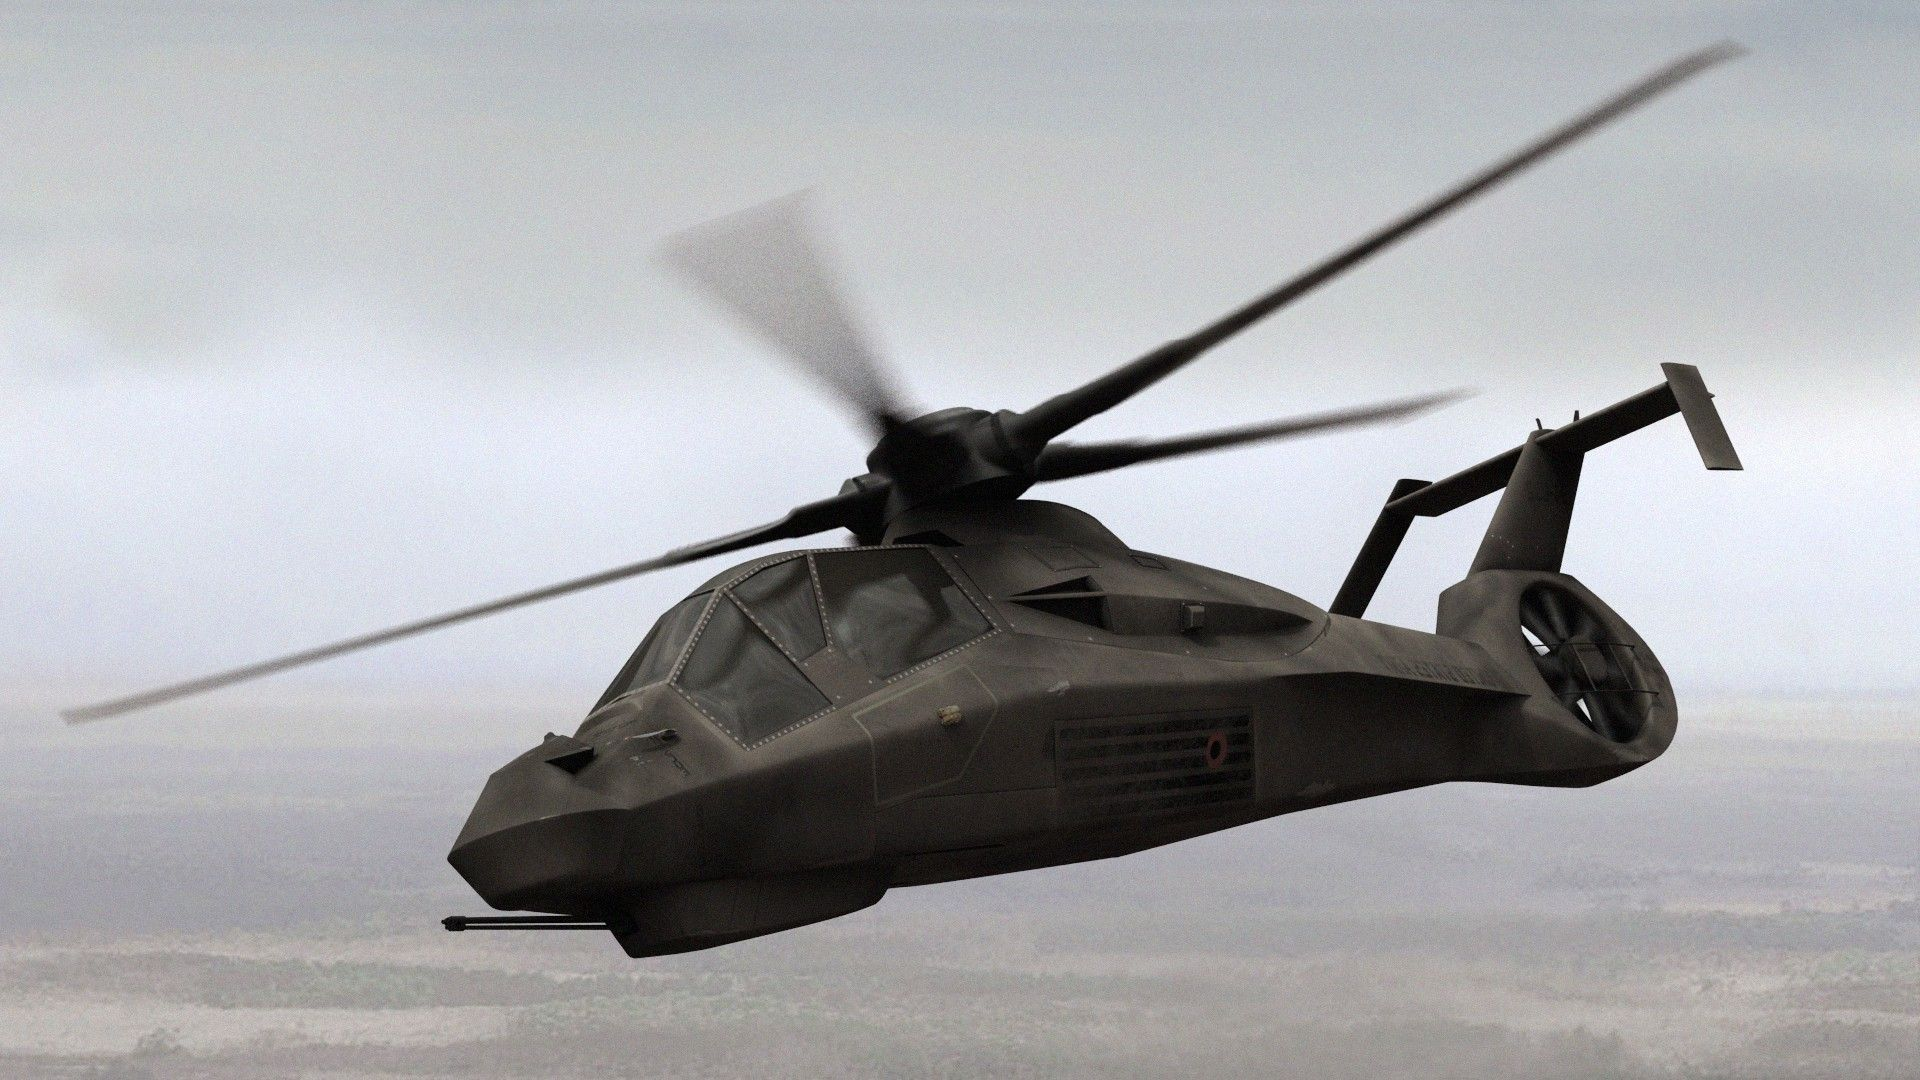 See How the Army's Would-Be Stealth Helicopter Borrowed from